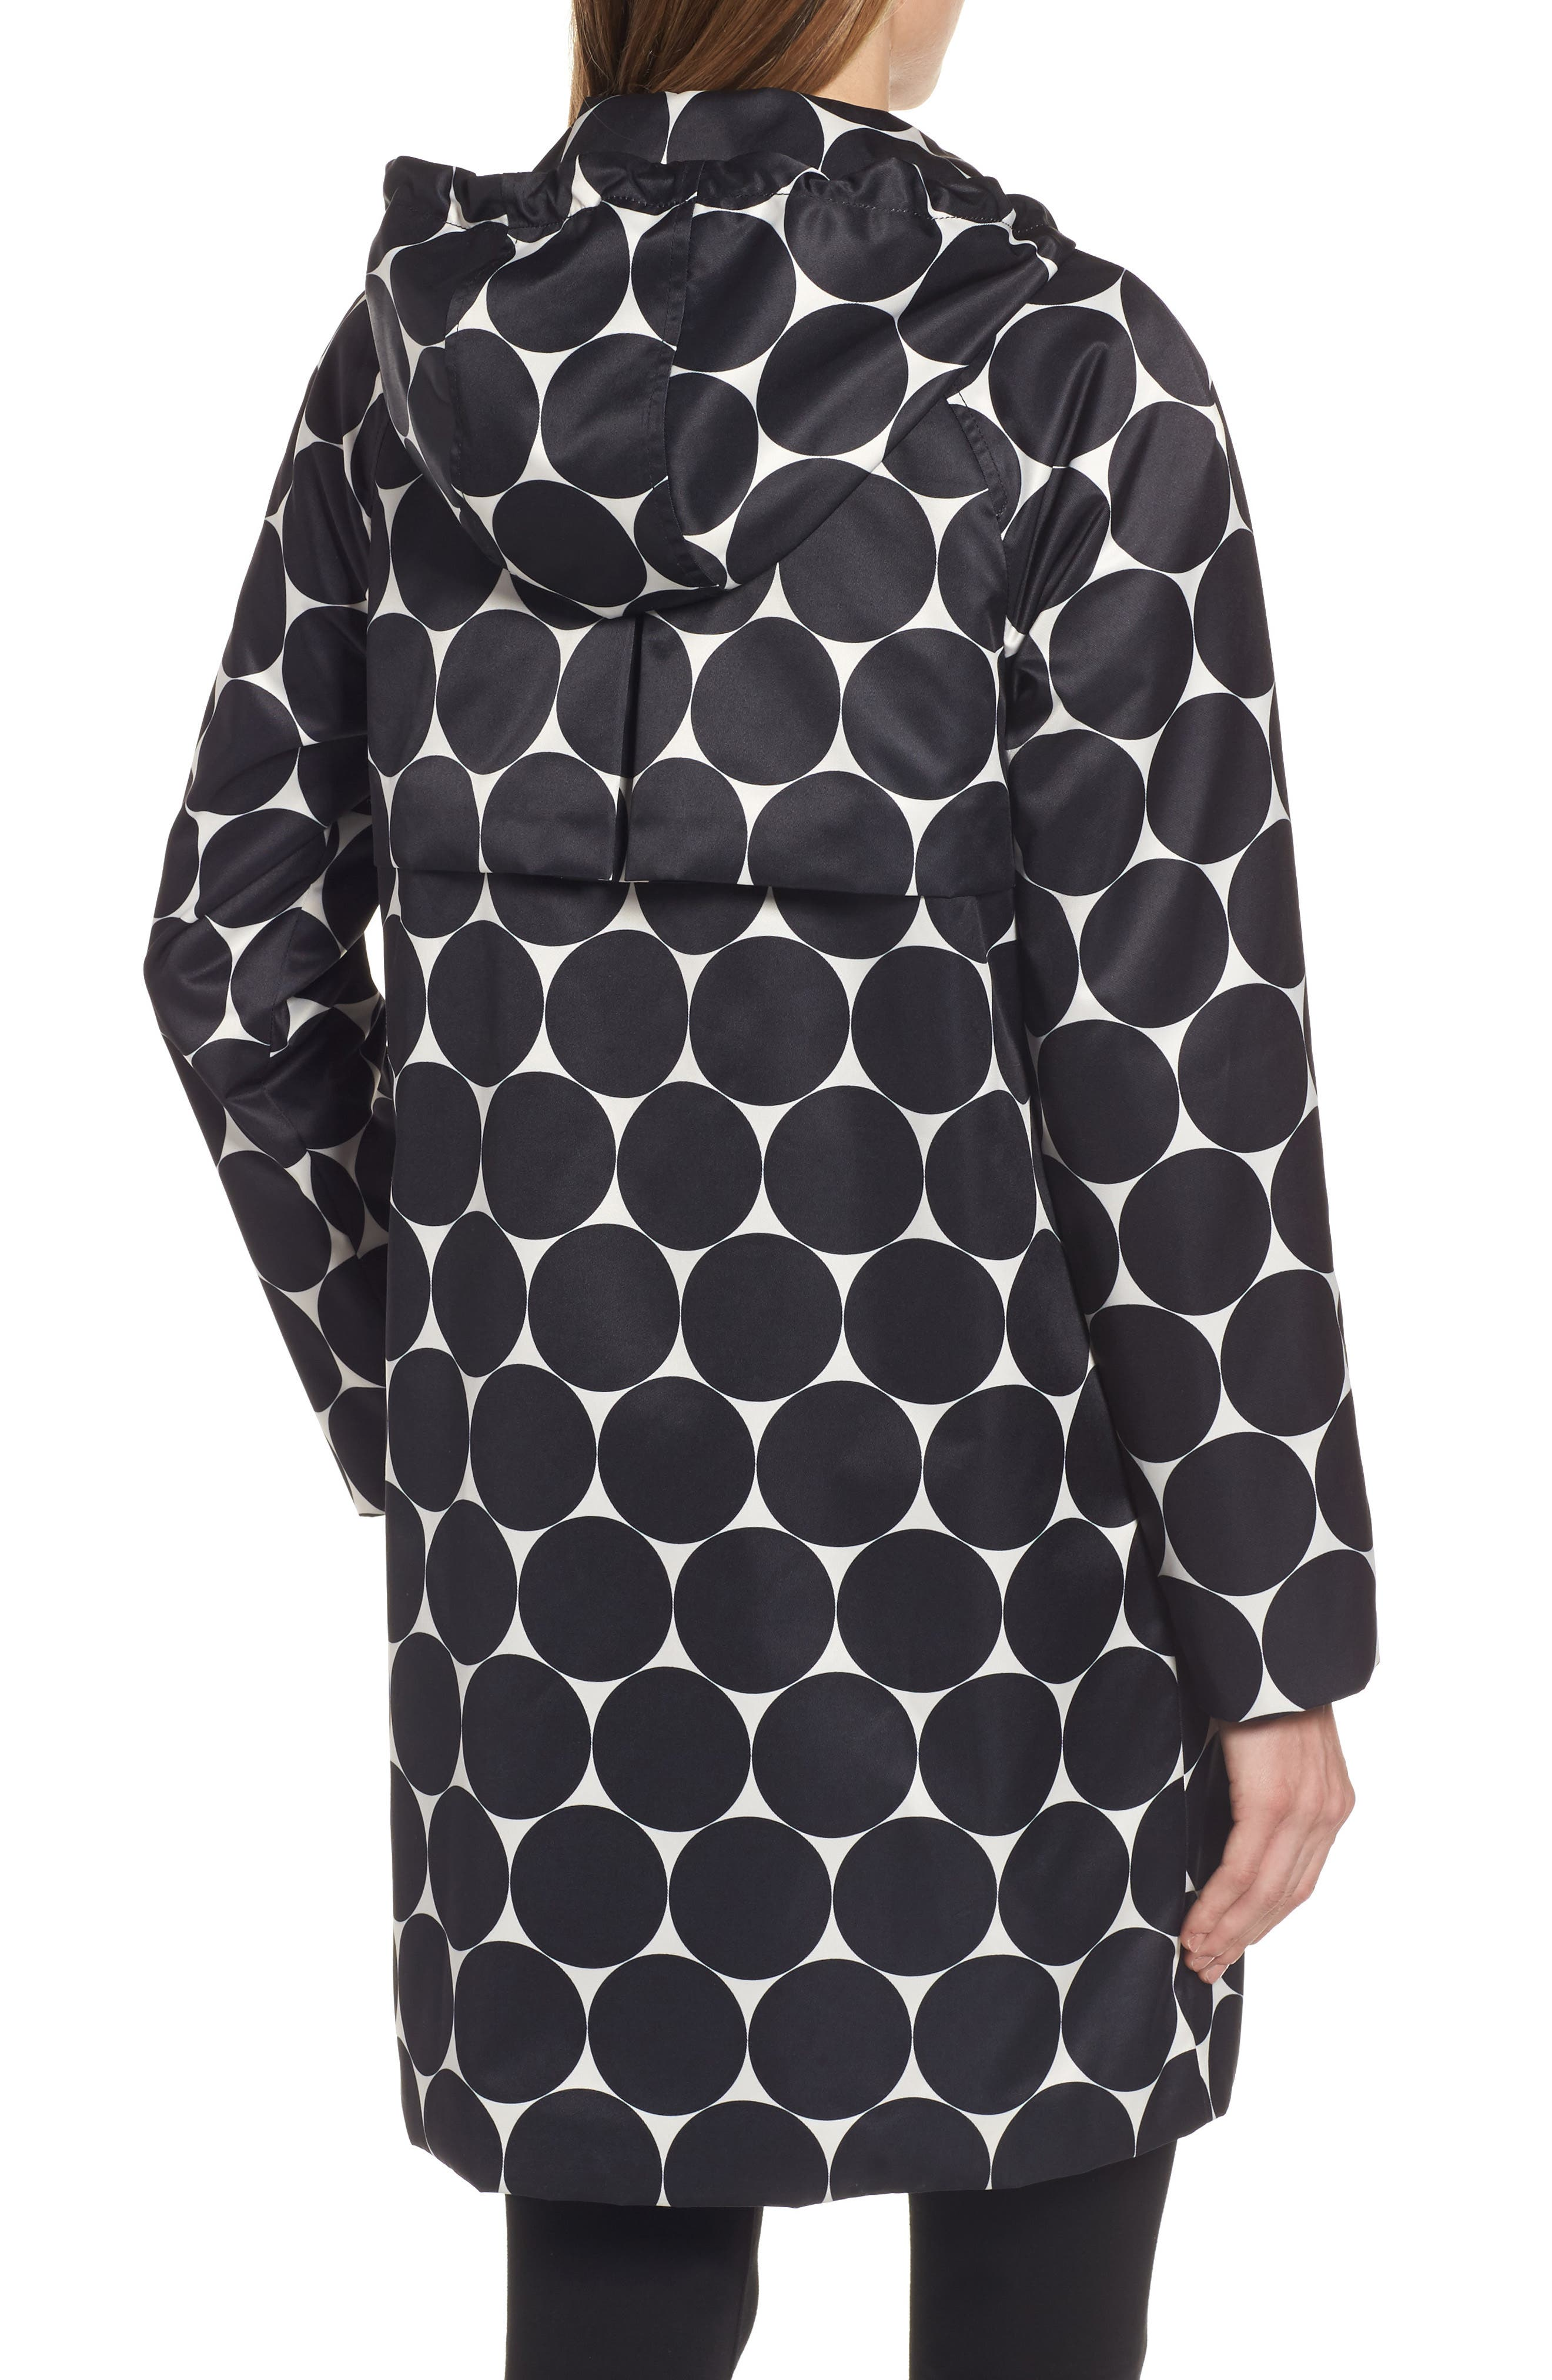 dot print raincoat,                             Alternate thumbnail 2, color,                             Dl Dot Cream/ Black